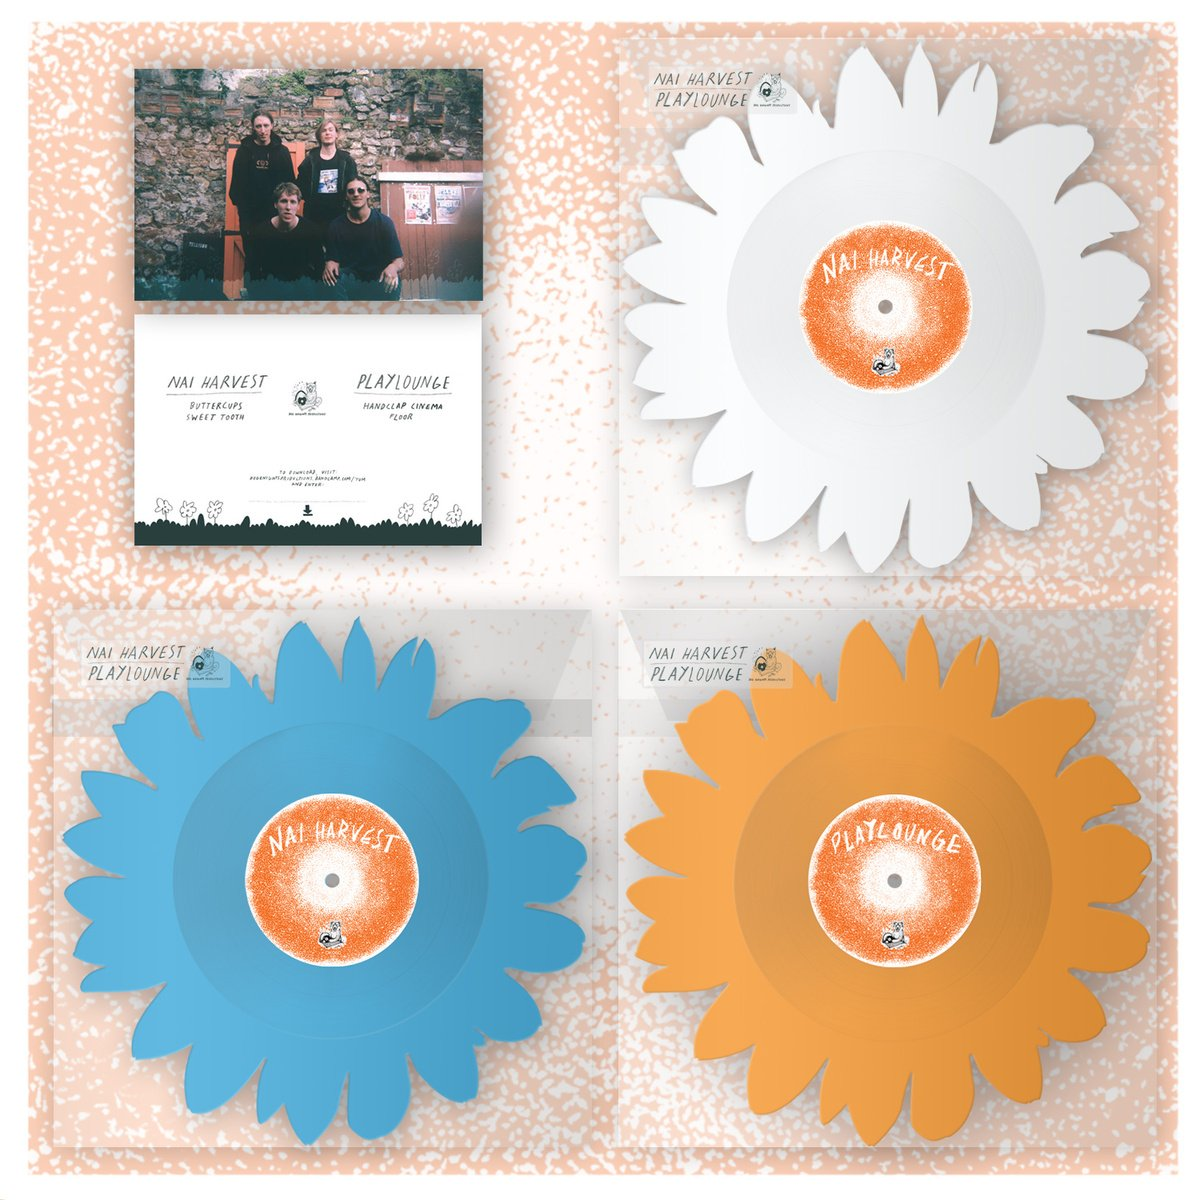 Nai Harvest / Playlounge | Flower Split LP